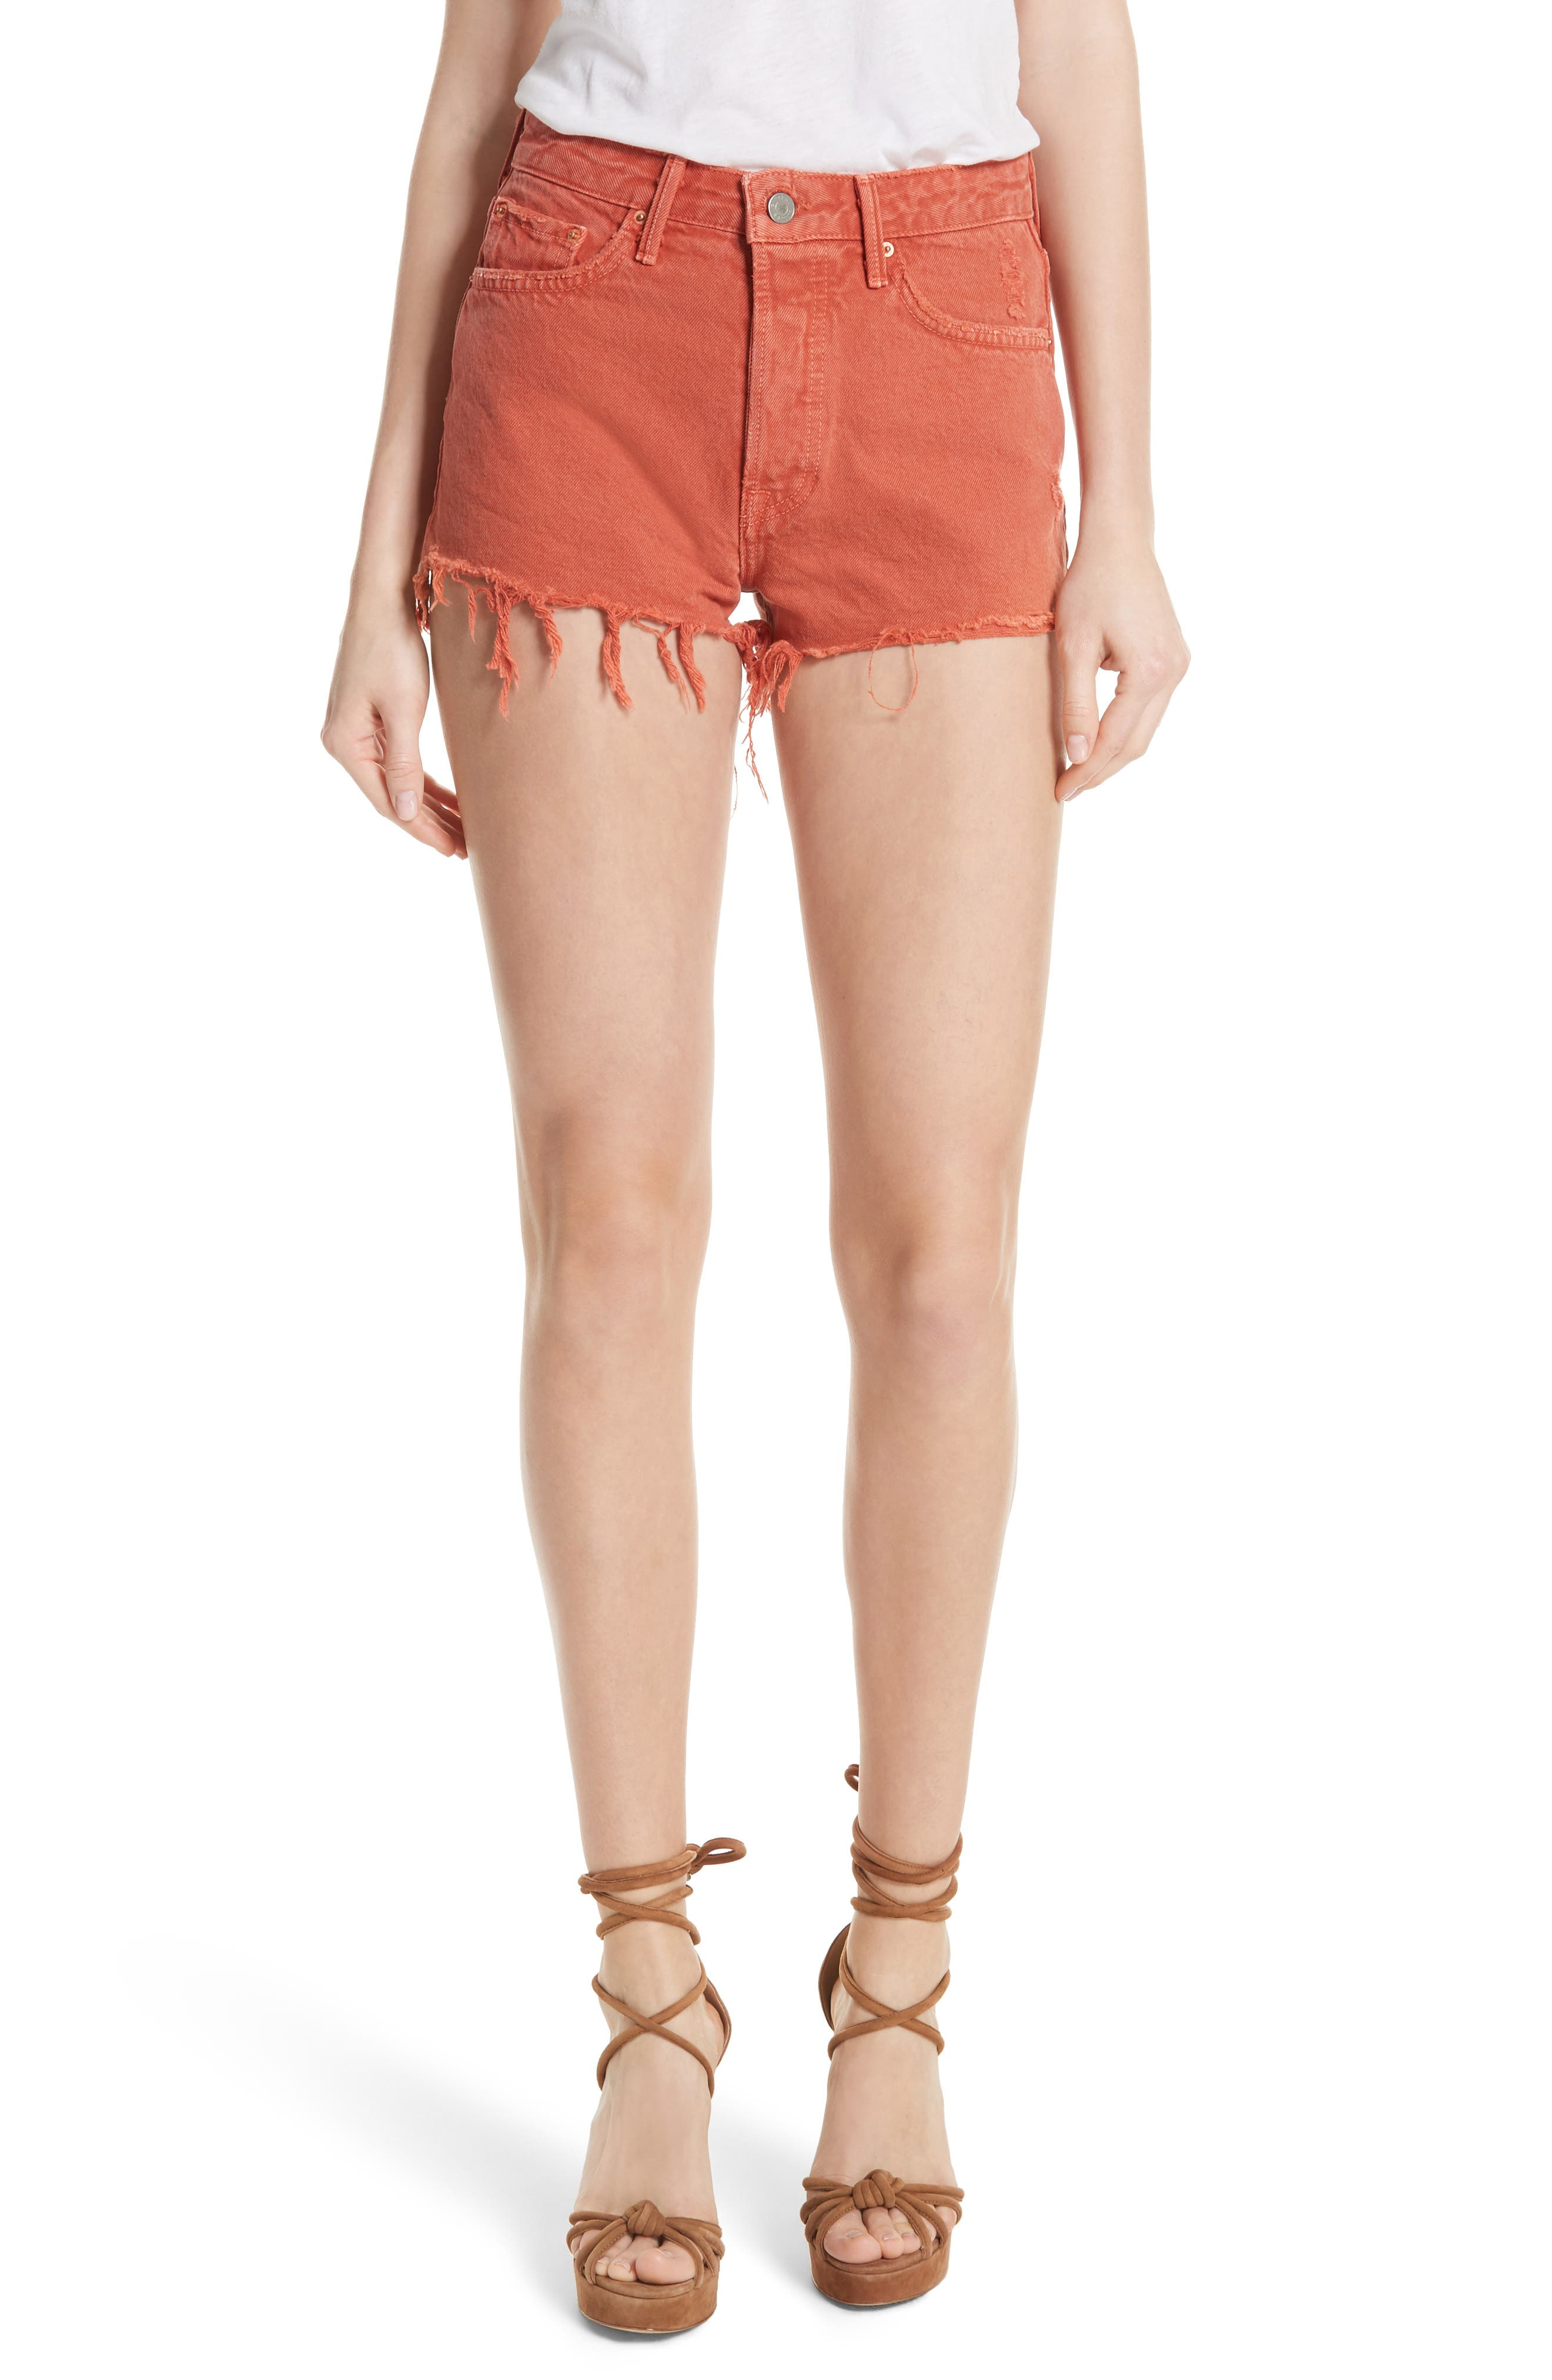 Cindy Rigid High Waist Denim Shorts,                         Main,                         color, Spice Market